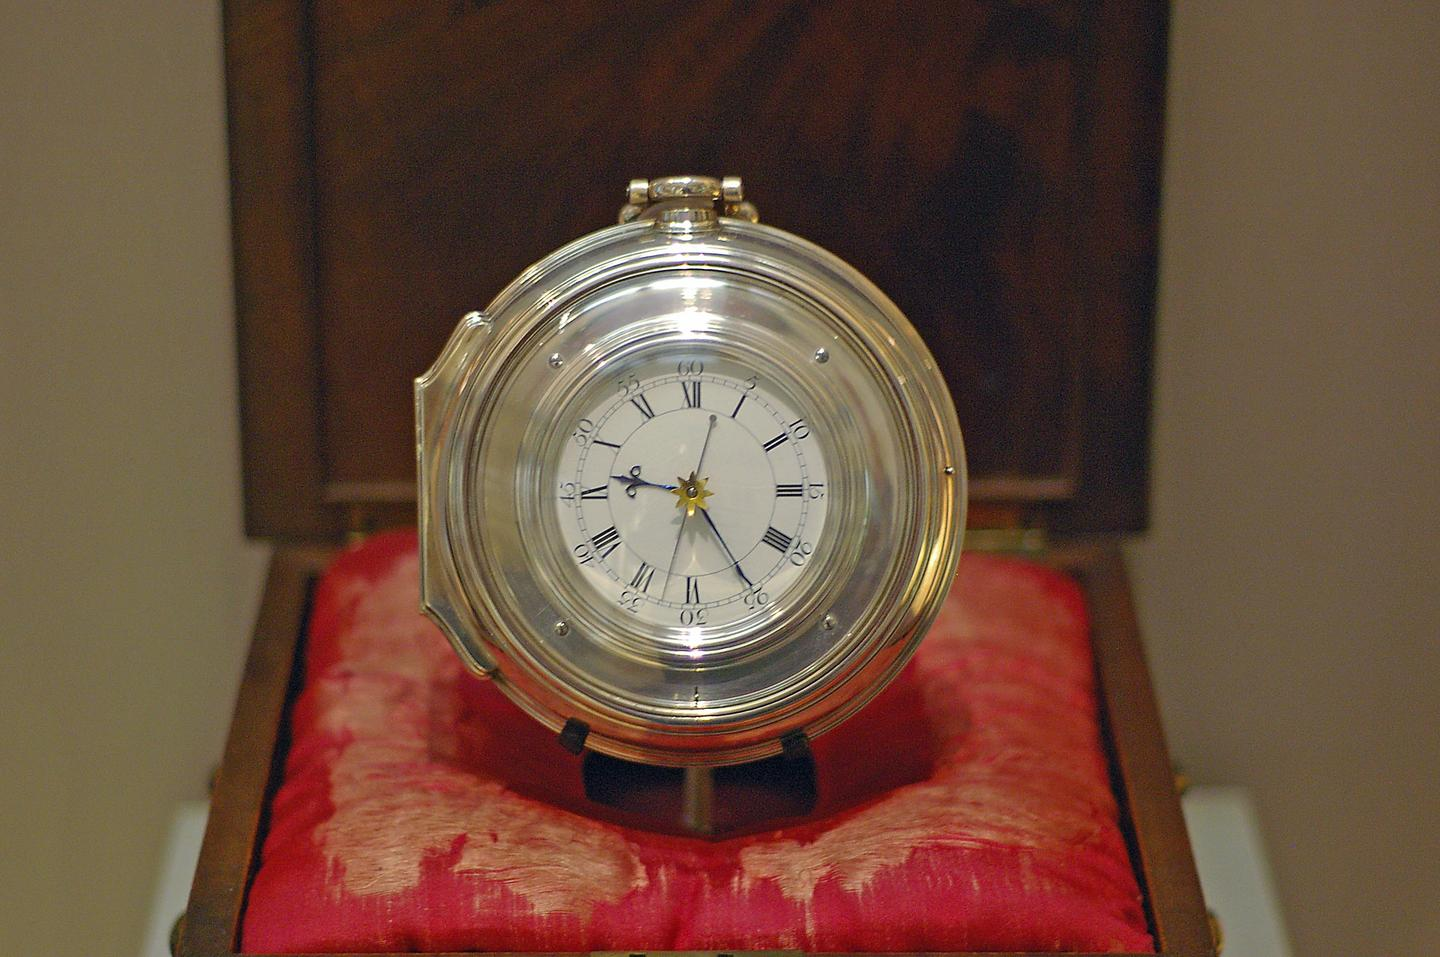 The Harrison's chronograph H5 (Image: Racklever/Wikipedia)